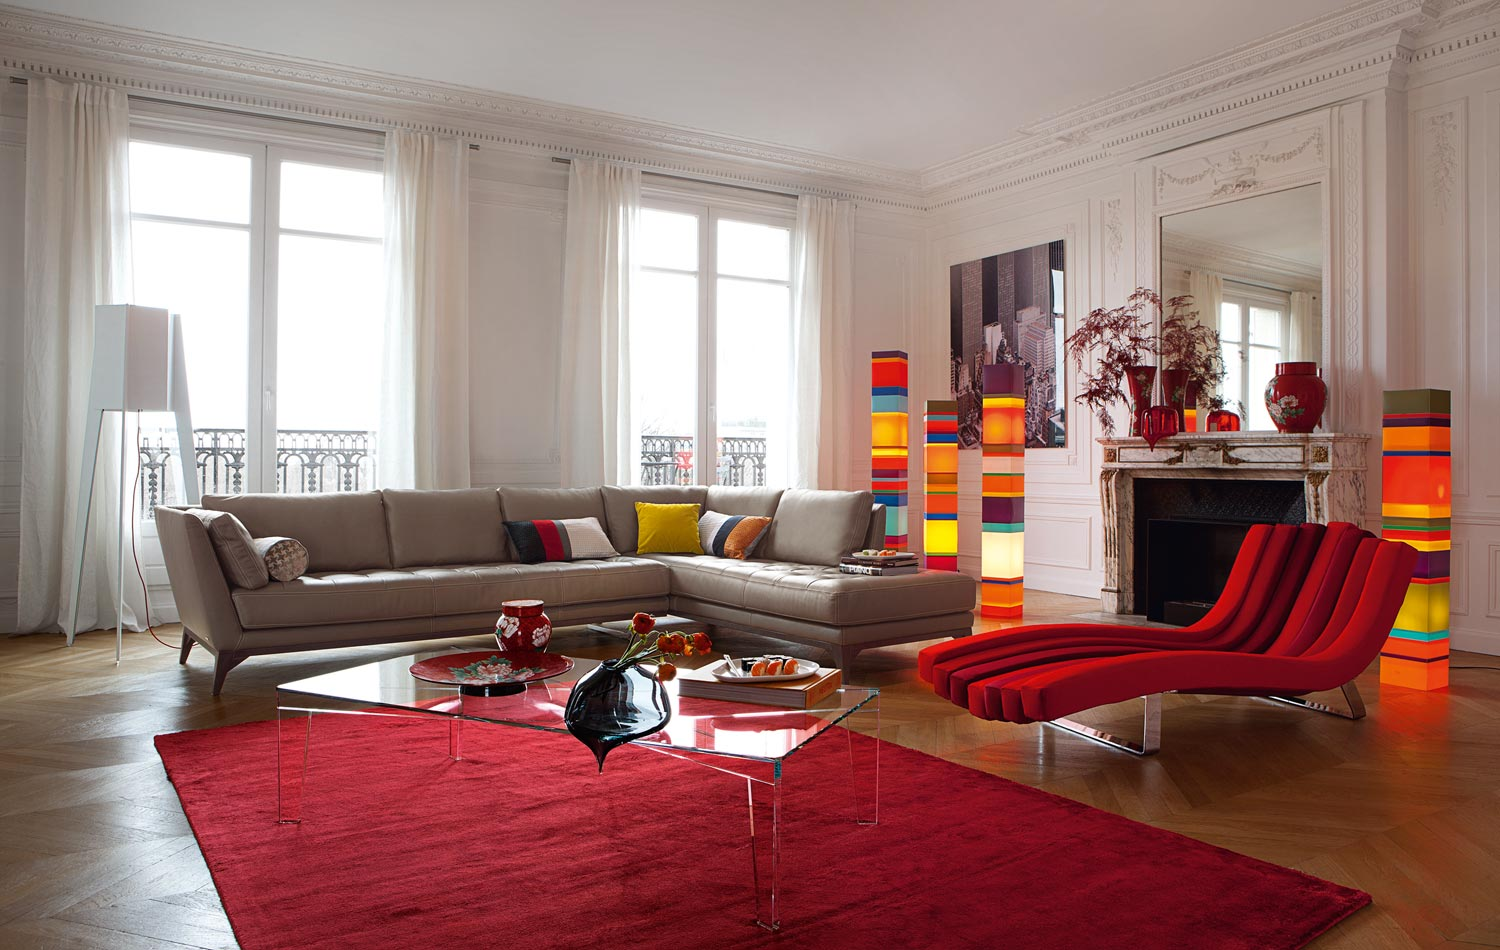 Wonderful Lounge Chair also Glass Table For Living Room Inspiration